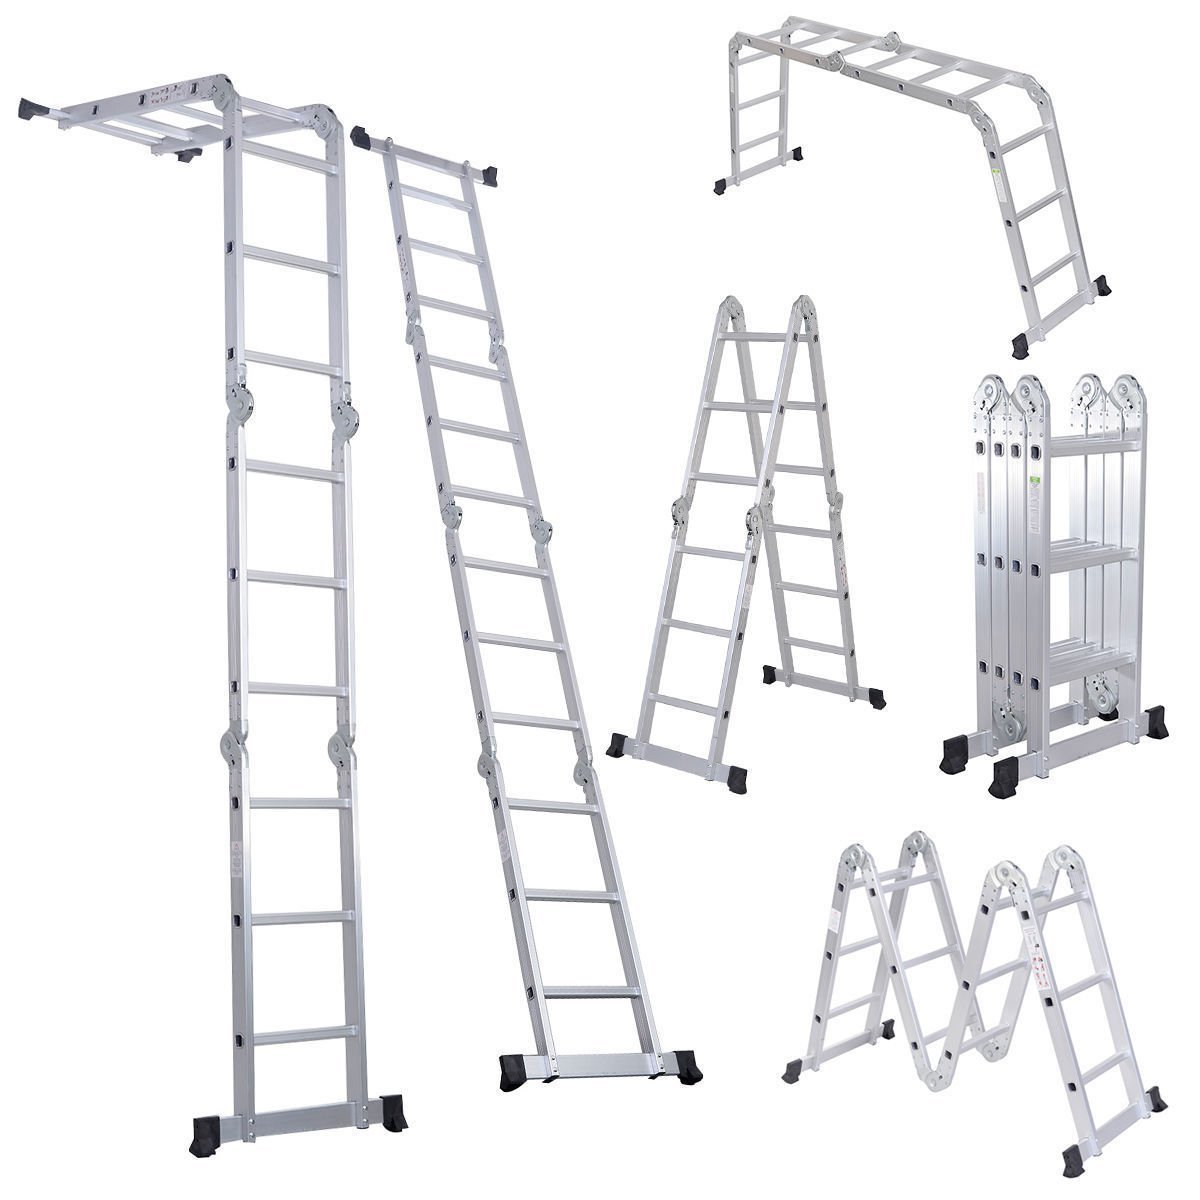 1. Luisladders 12.5 Feet Aluminum Multi-Purpose Folding Extendable Step Ladder Safety Locking Hinges 330 Pound Capacity Anti-slip Design